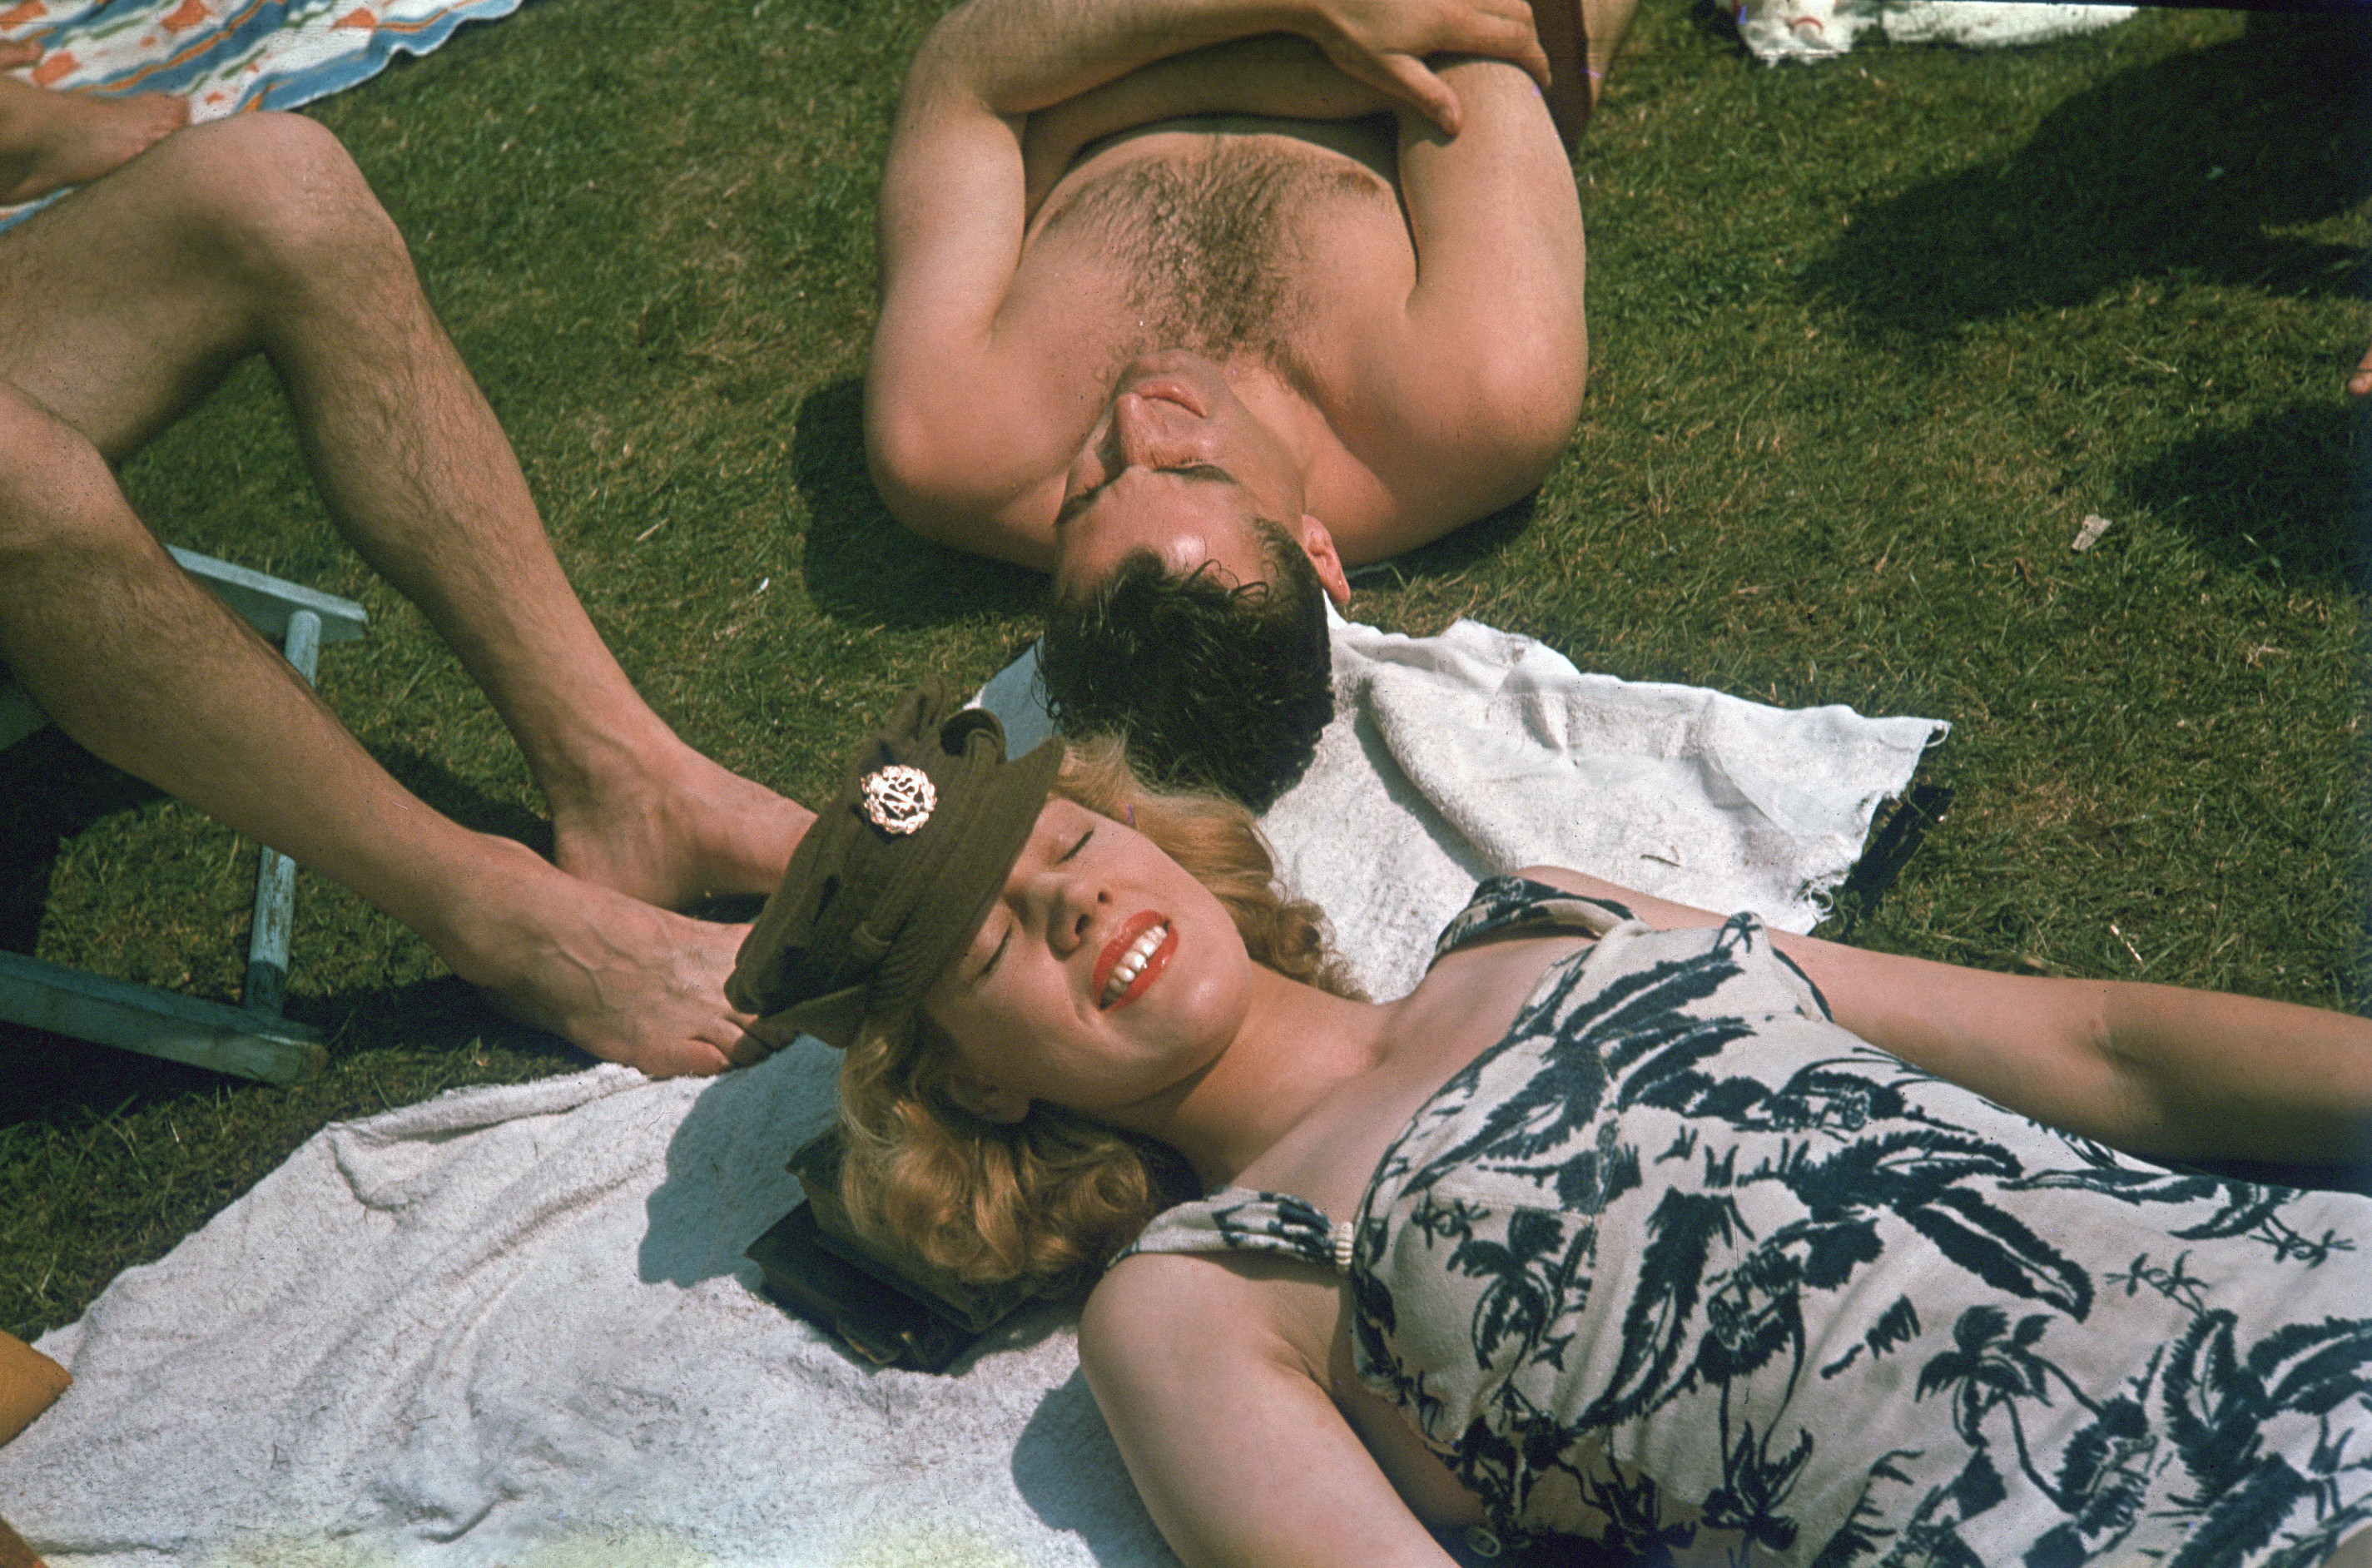 1942. The first week of June 1942 was hotter than usual, reaching 29.4 degrees Celcius on the 6th. Londoners took advantage of the heat to sunbathe in the parks.